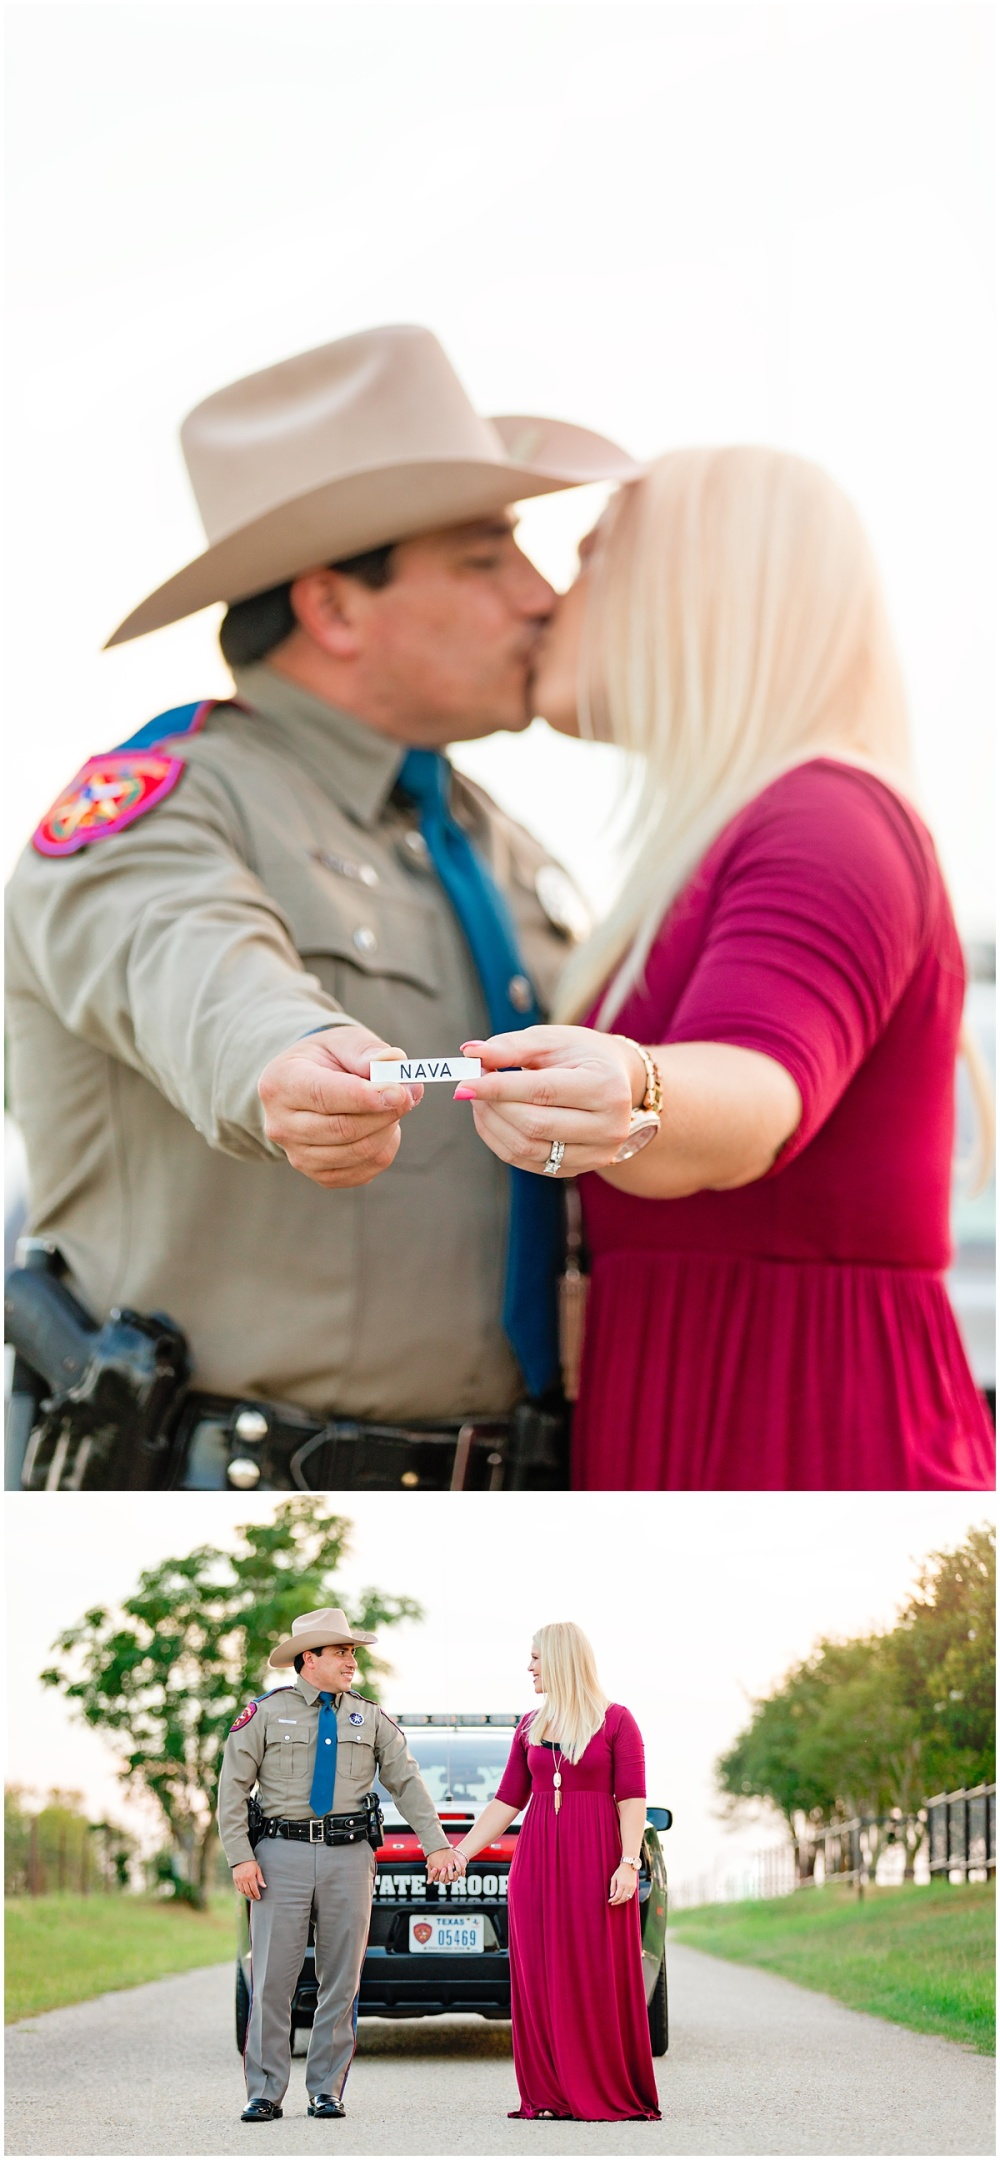 Portraits-State-Trooper-Photos-San-Antonio-Hill-Country-Texas-Carly-Barton-Photography_0008.jpg